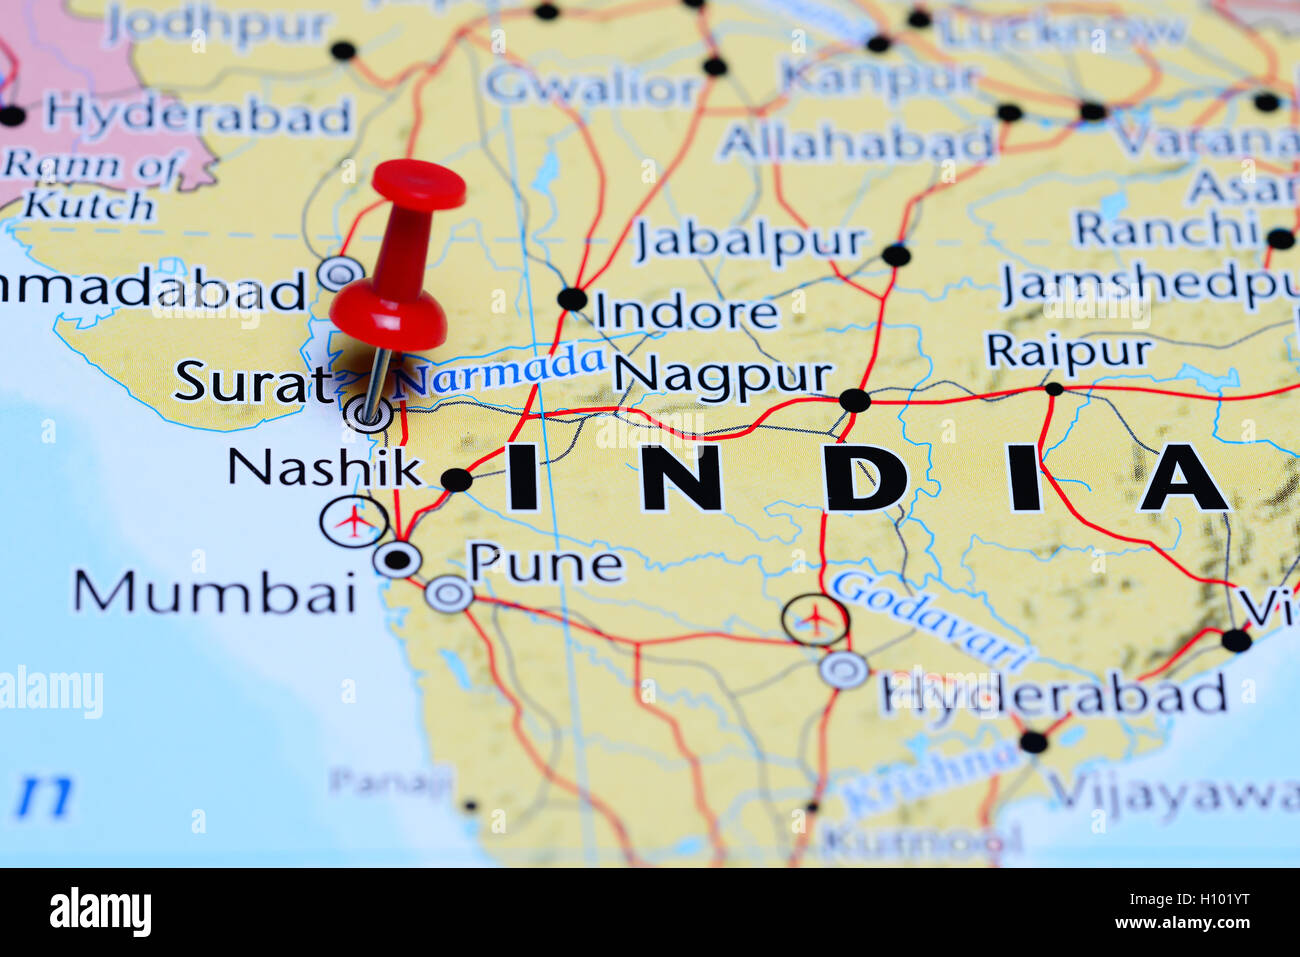 surat in india map Surat Pinned On A Map Of India Stock Photo Alamy surat in india map